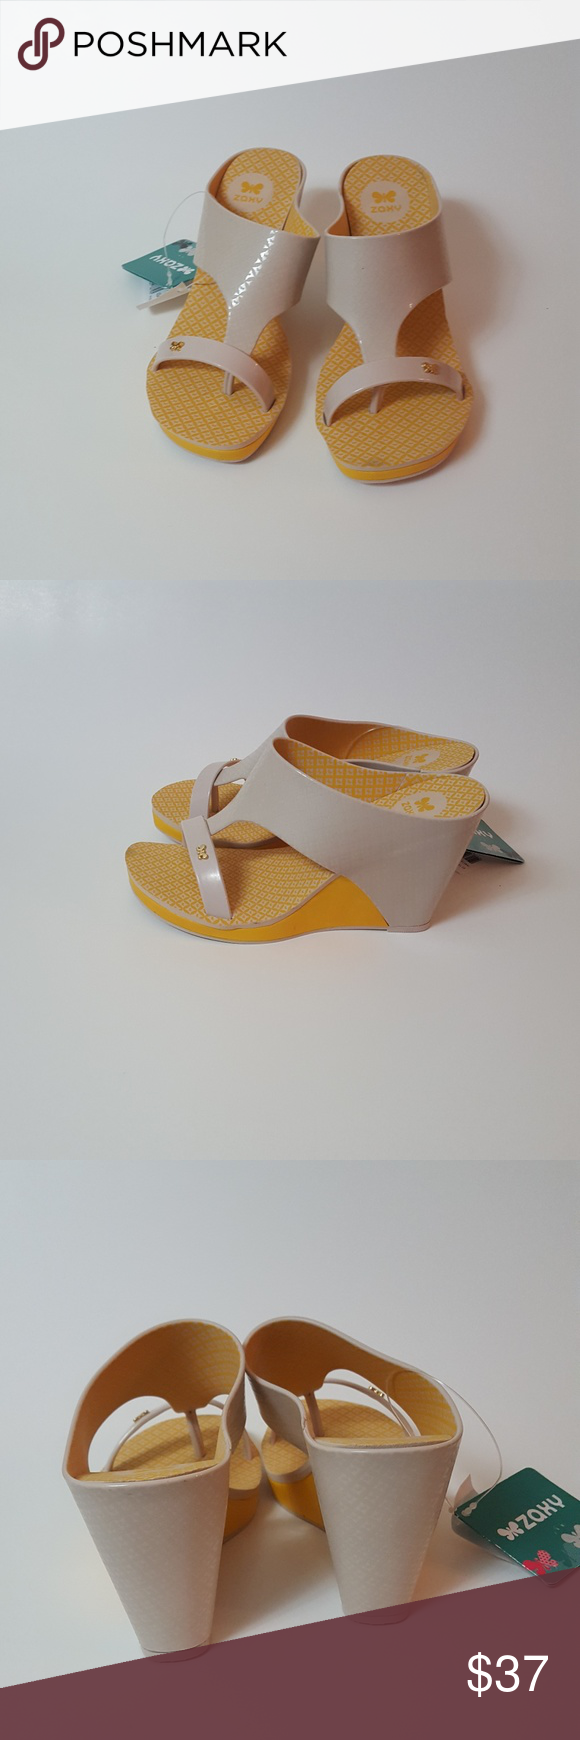 5c96538fd4 Zaxy Glamour Top 2 Wedge Brand new without box. The latest fashion in  moulded plastic